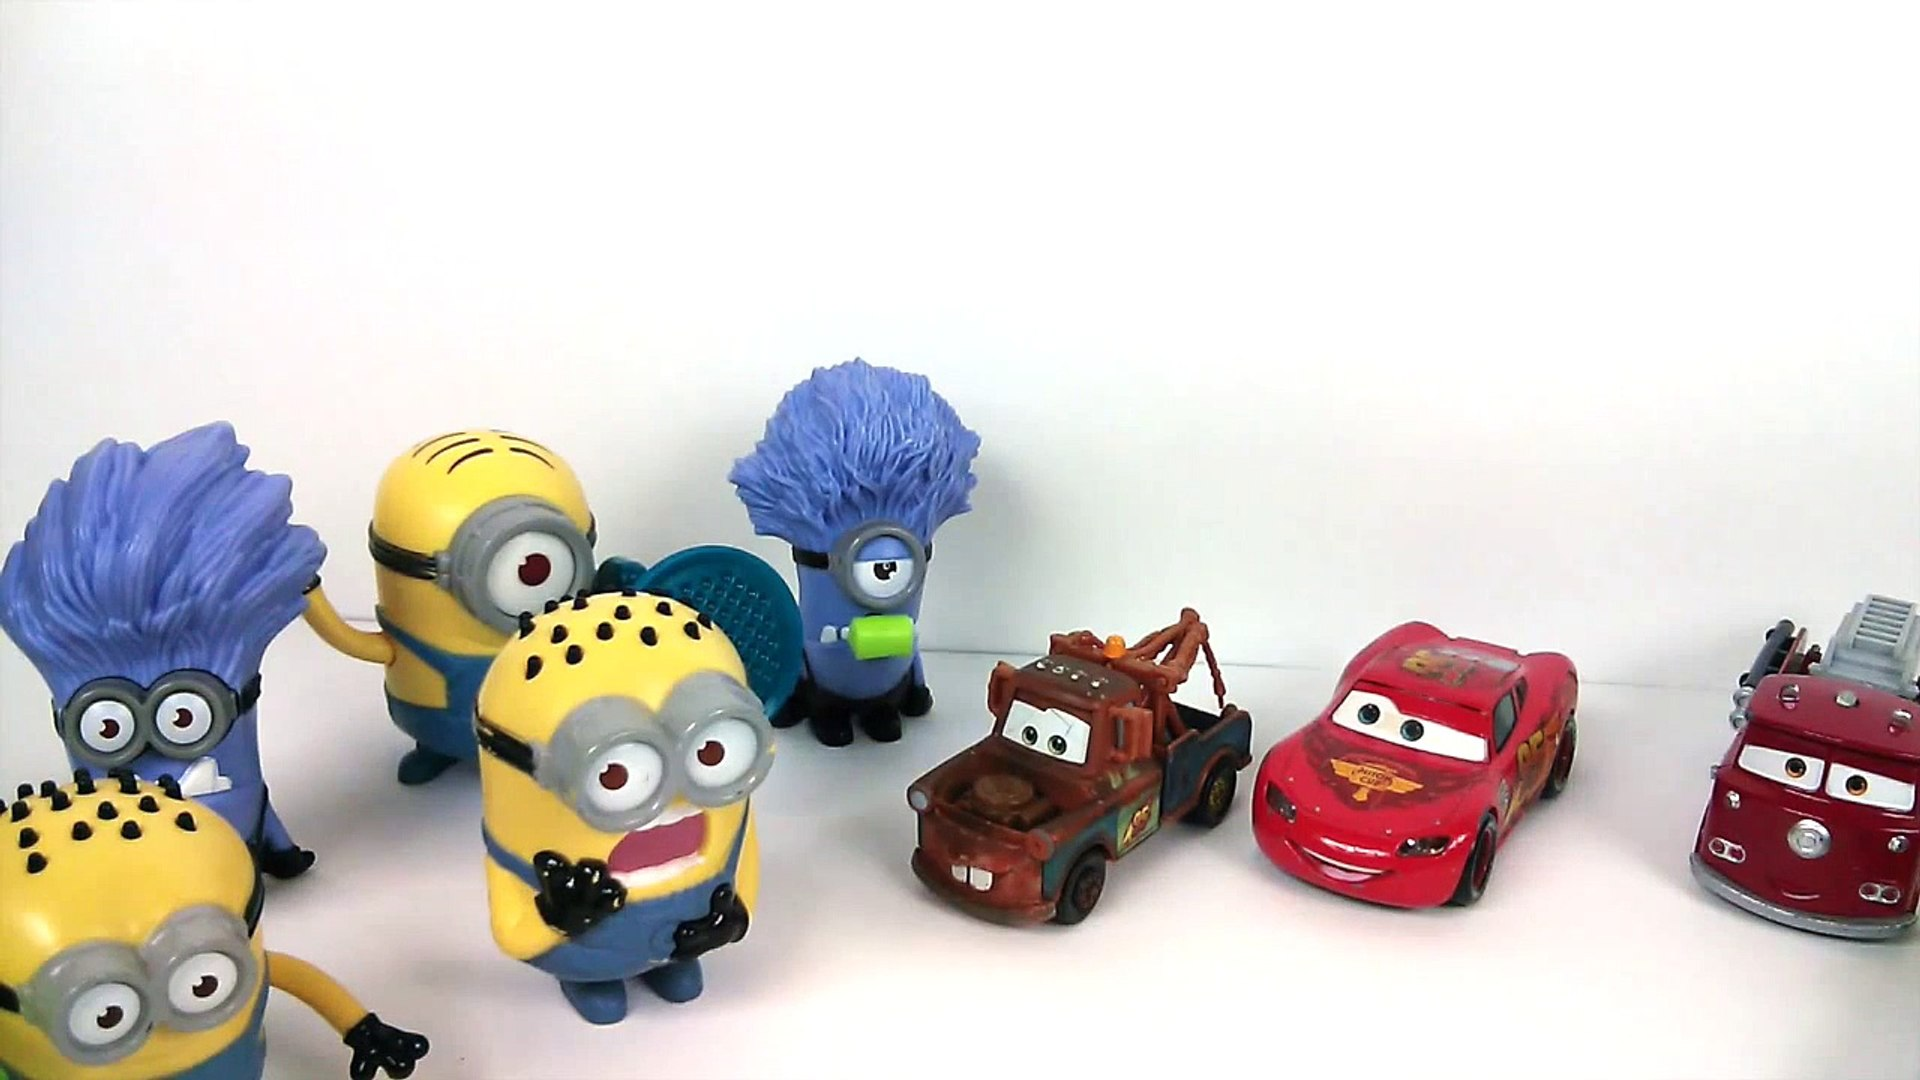 Funny One Liner Jokes with Disney Cars Mater and Despicable Me minions